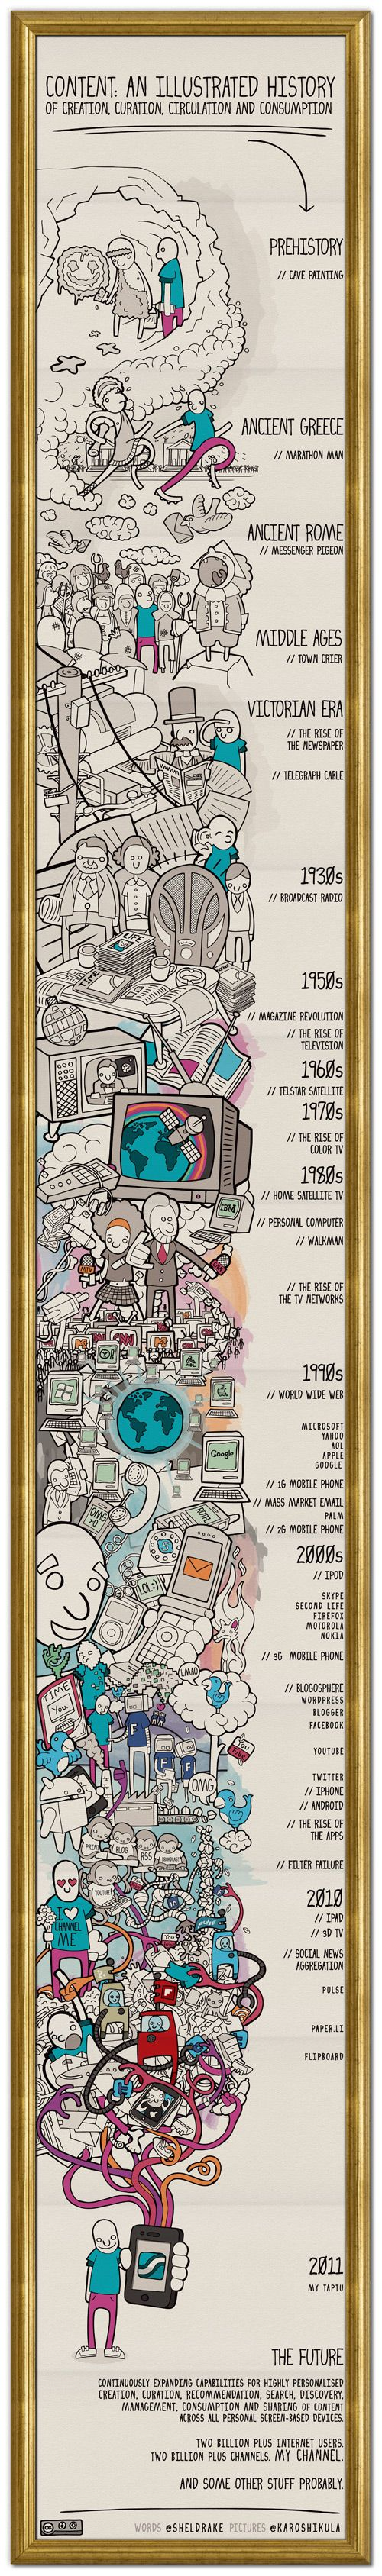 The History of Content, From Cave Paintings to Flipboard [INFOGRAPHIC]